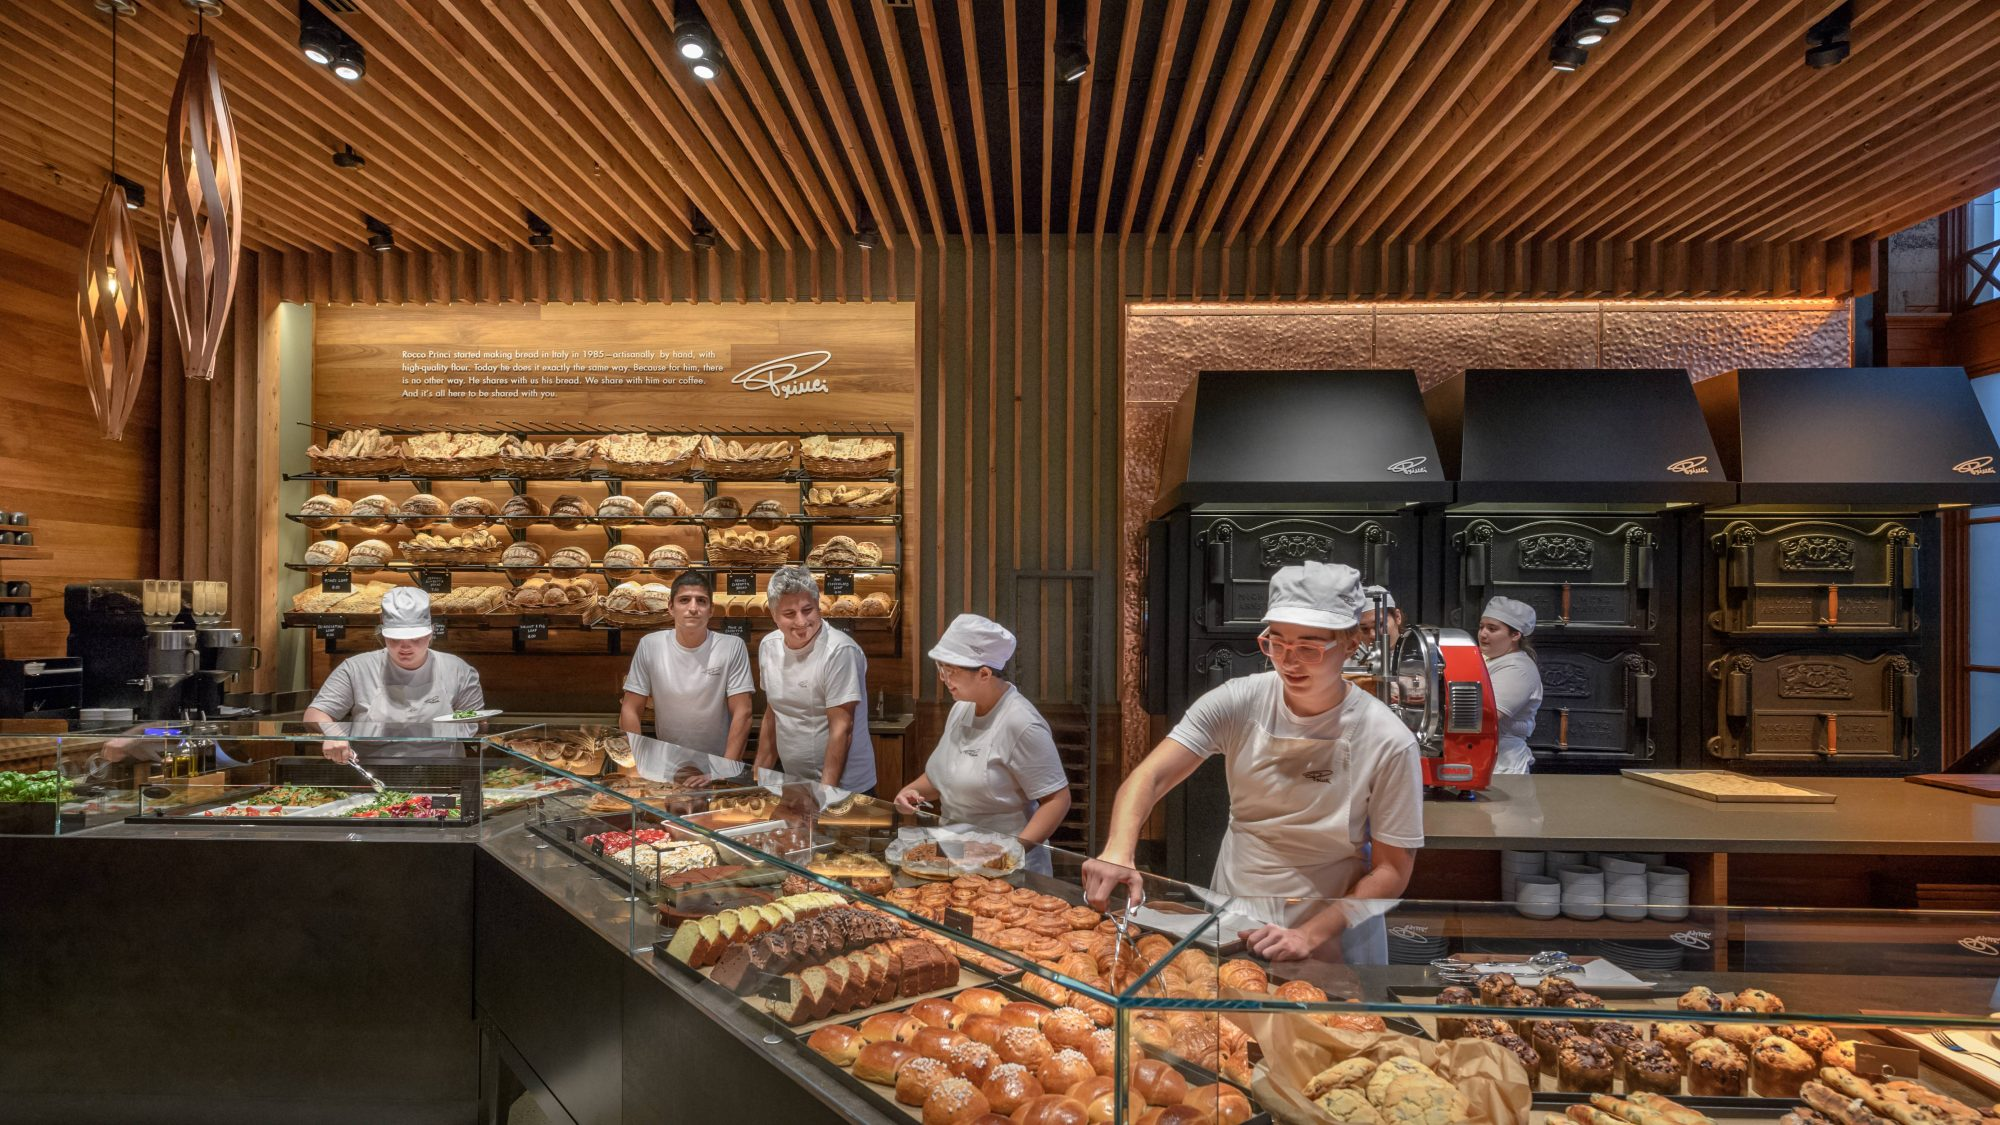 Italian Bakery Chain Princi Opens in Seattle, Coming Soon to New York and Chicago